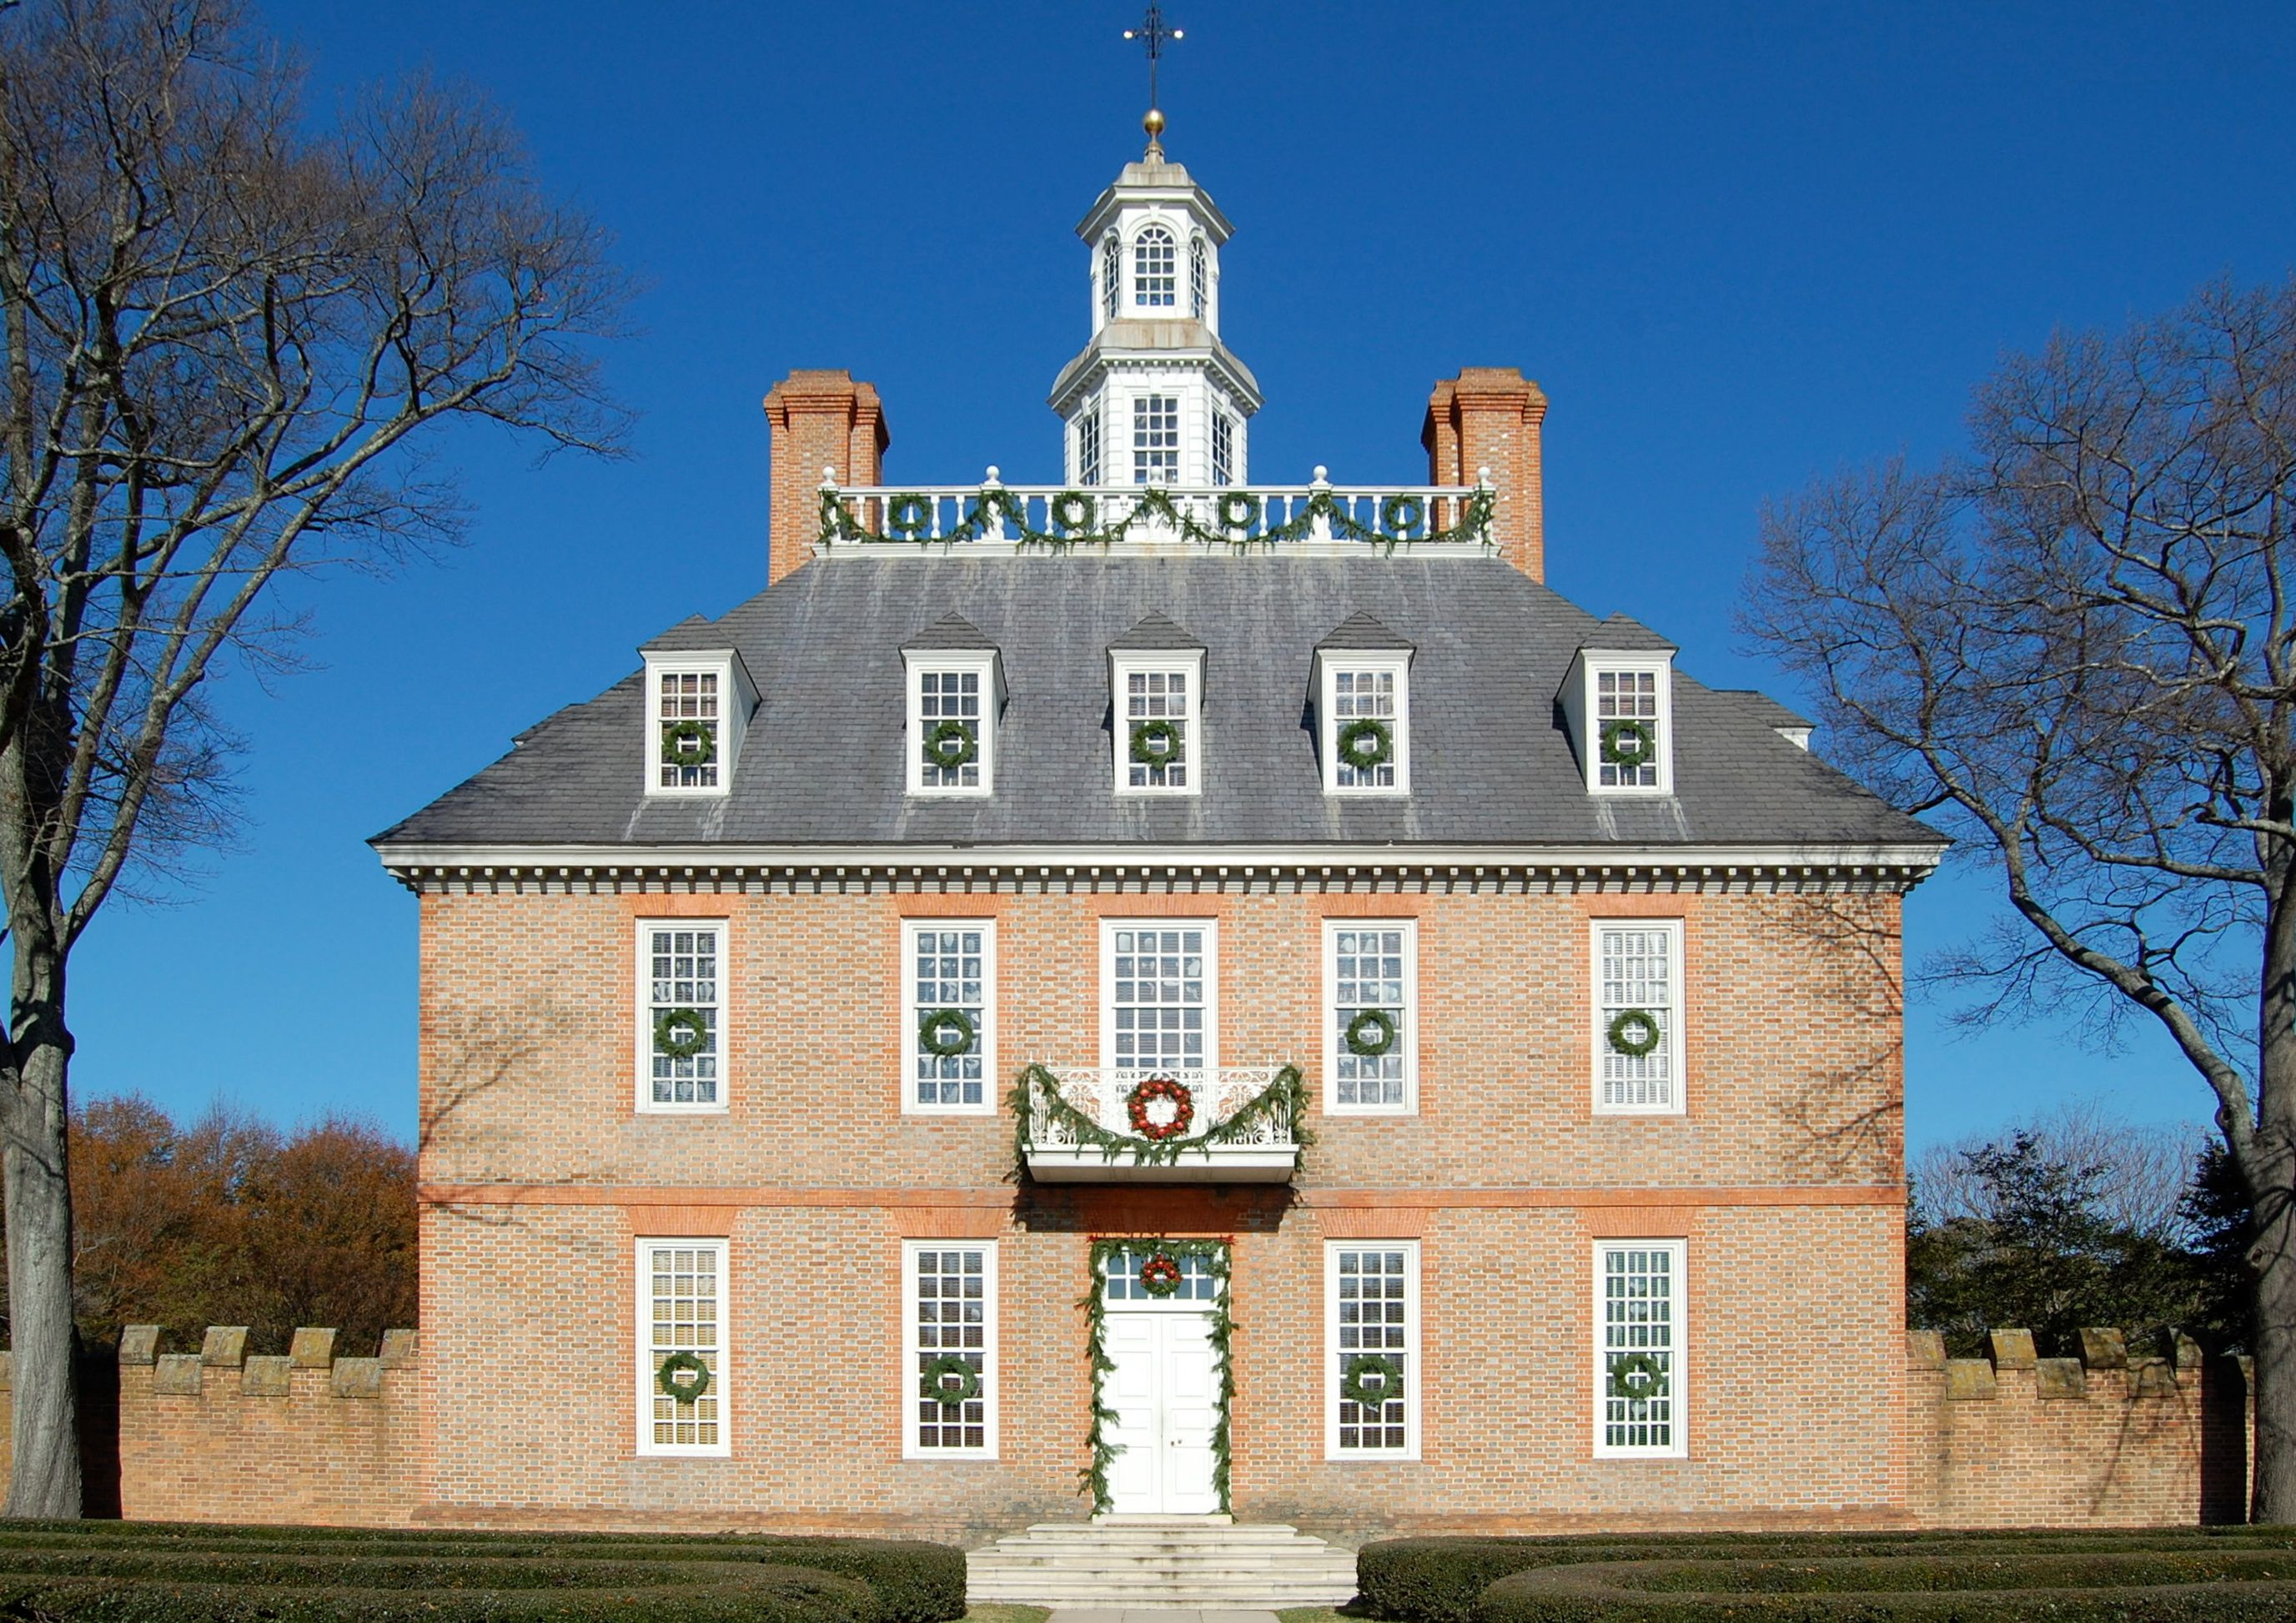 The Governor's Palace, Williamsburg, VA. Colonial